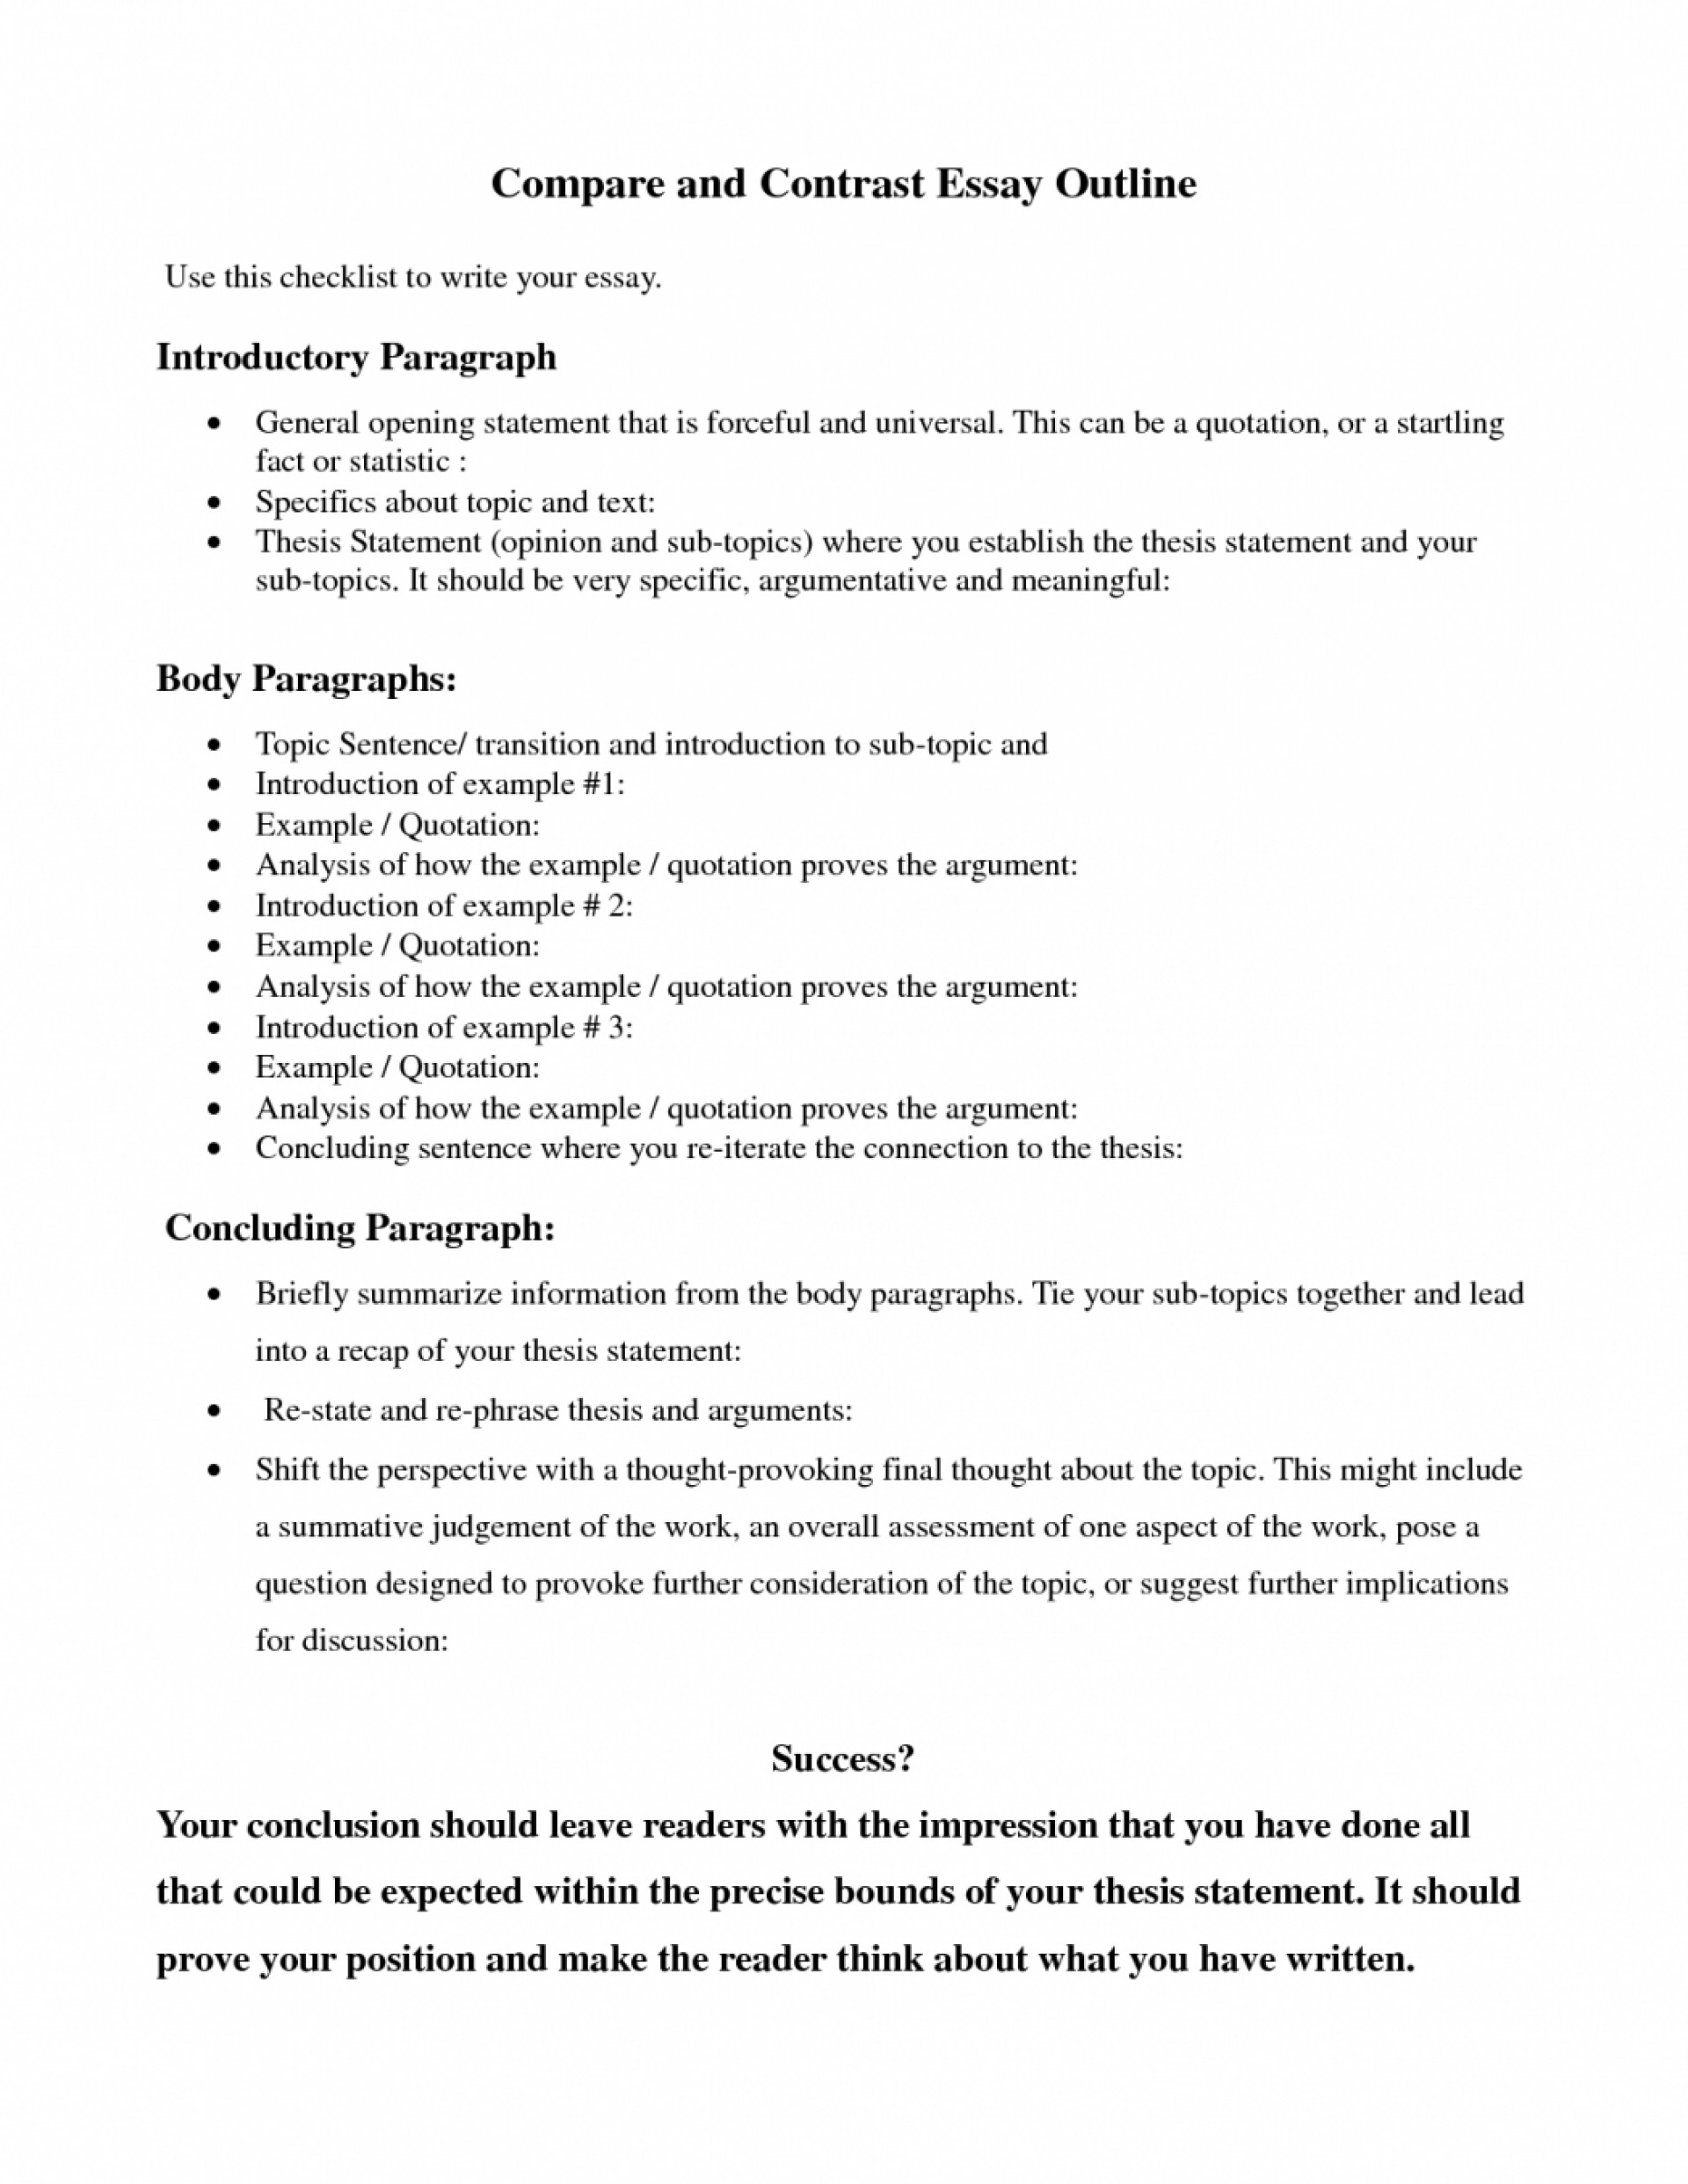 008 Essays About Success Writing Comparison Essay How To Write Better Amazon Thesis Statement For Compare And Contrast Template Qak The Guardian In English Book Reddit By Bryan Greetham Sensational On A Successful Person Is Someone Who Rich Life Man's Final Goal Secret Of 1920